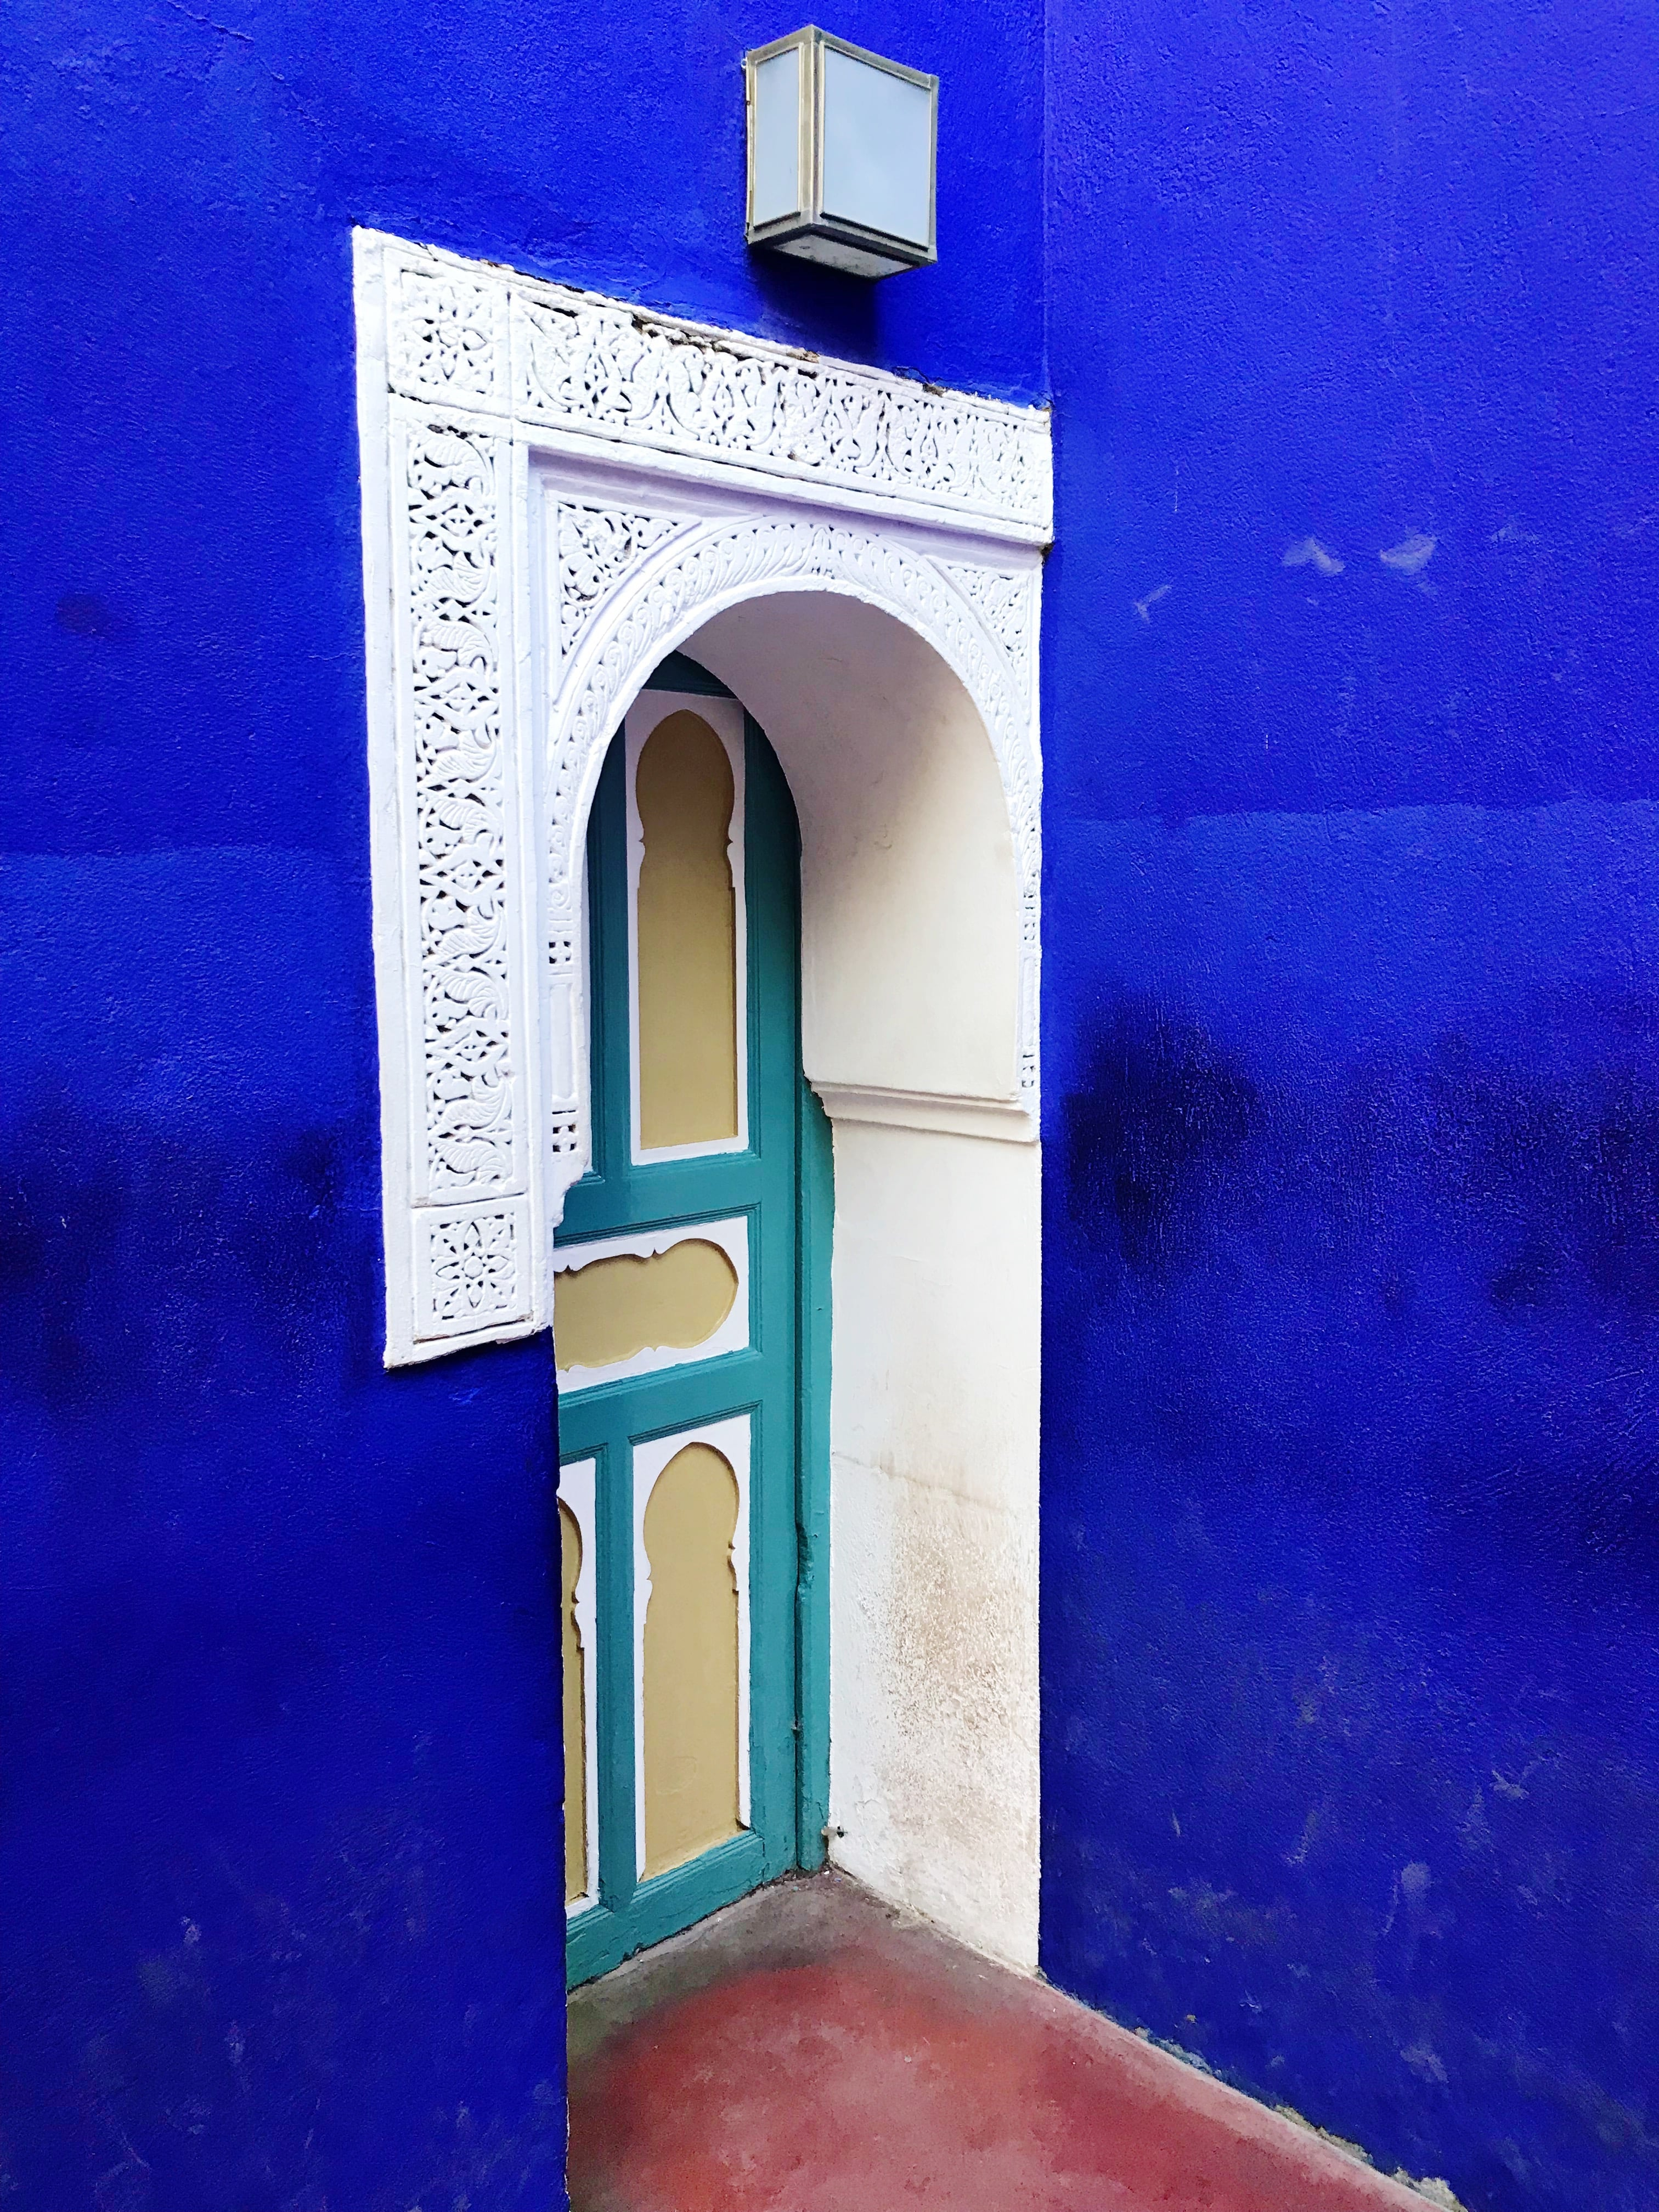 MARRAKECH TRAVEL GUIDE + TIPS | Majorelle Gardens - Marrakech Travel Guide - Marrakech Travel - Marrakech Morocco - Shopping In Marrakech - What To See In Marrakech - What To Do In Marrakech - Marrakech Travel Blog - Marrakech Hotels - Marrakech Weather - Marrakesh - Morocco Travel Blog - #morocco #travel #marrakech